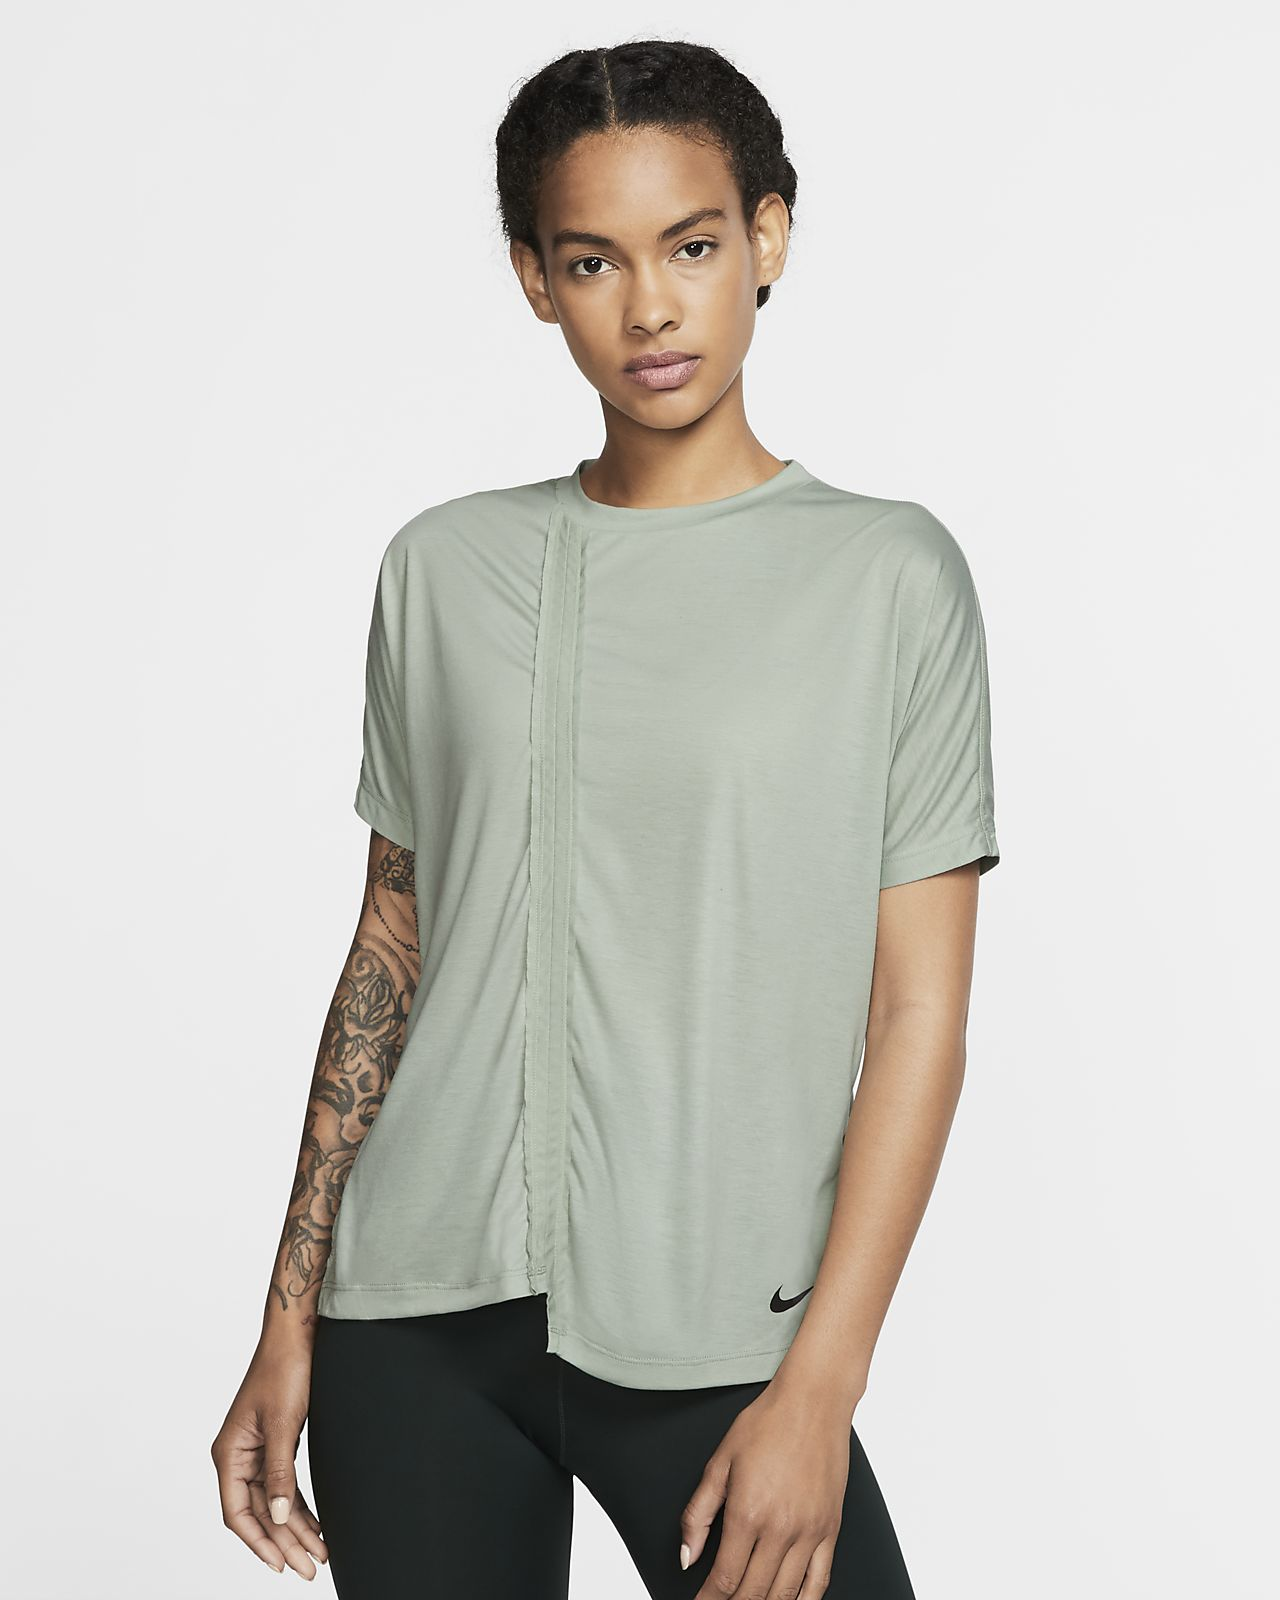 Nike Women's Short-Sleeve Running Top